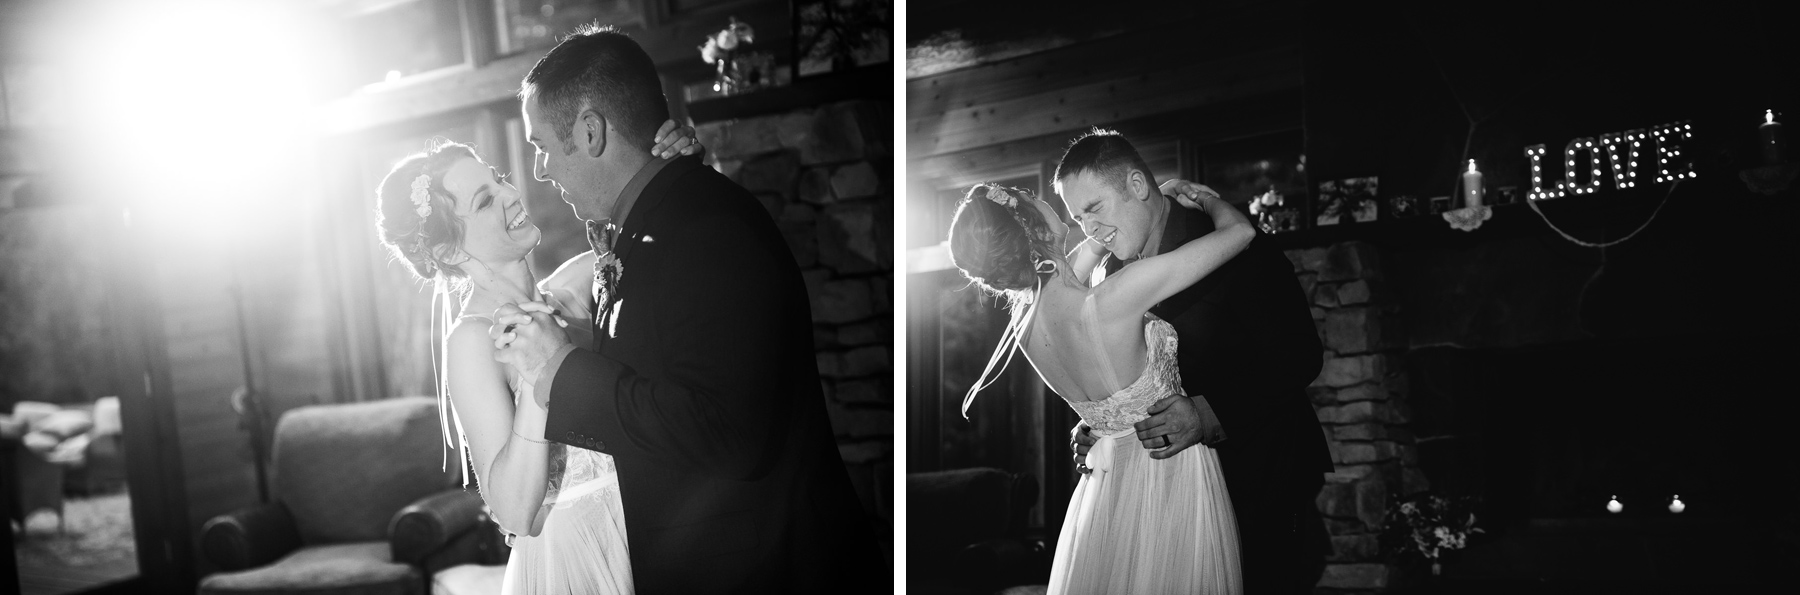 lake dale resort bride and groom first dance